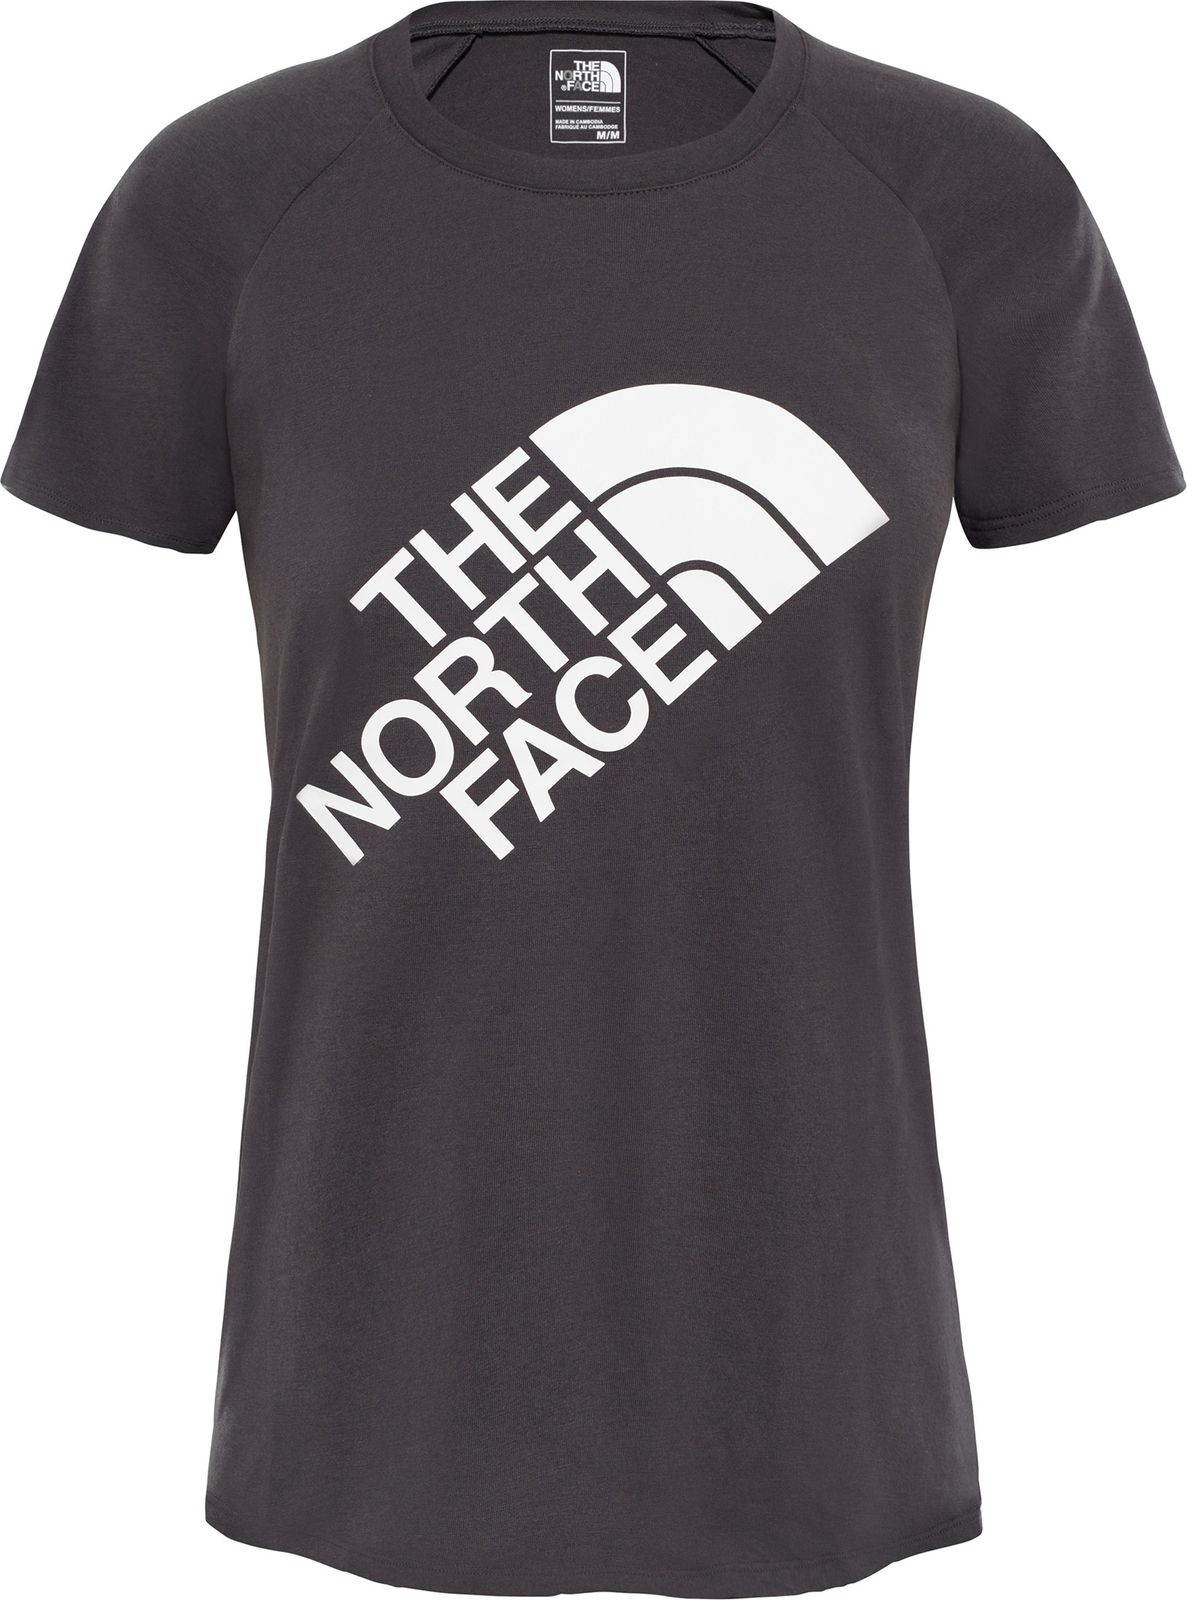 Футболка The North Face Graphic Play Ha Tn футболка the north face